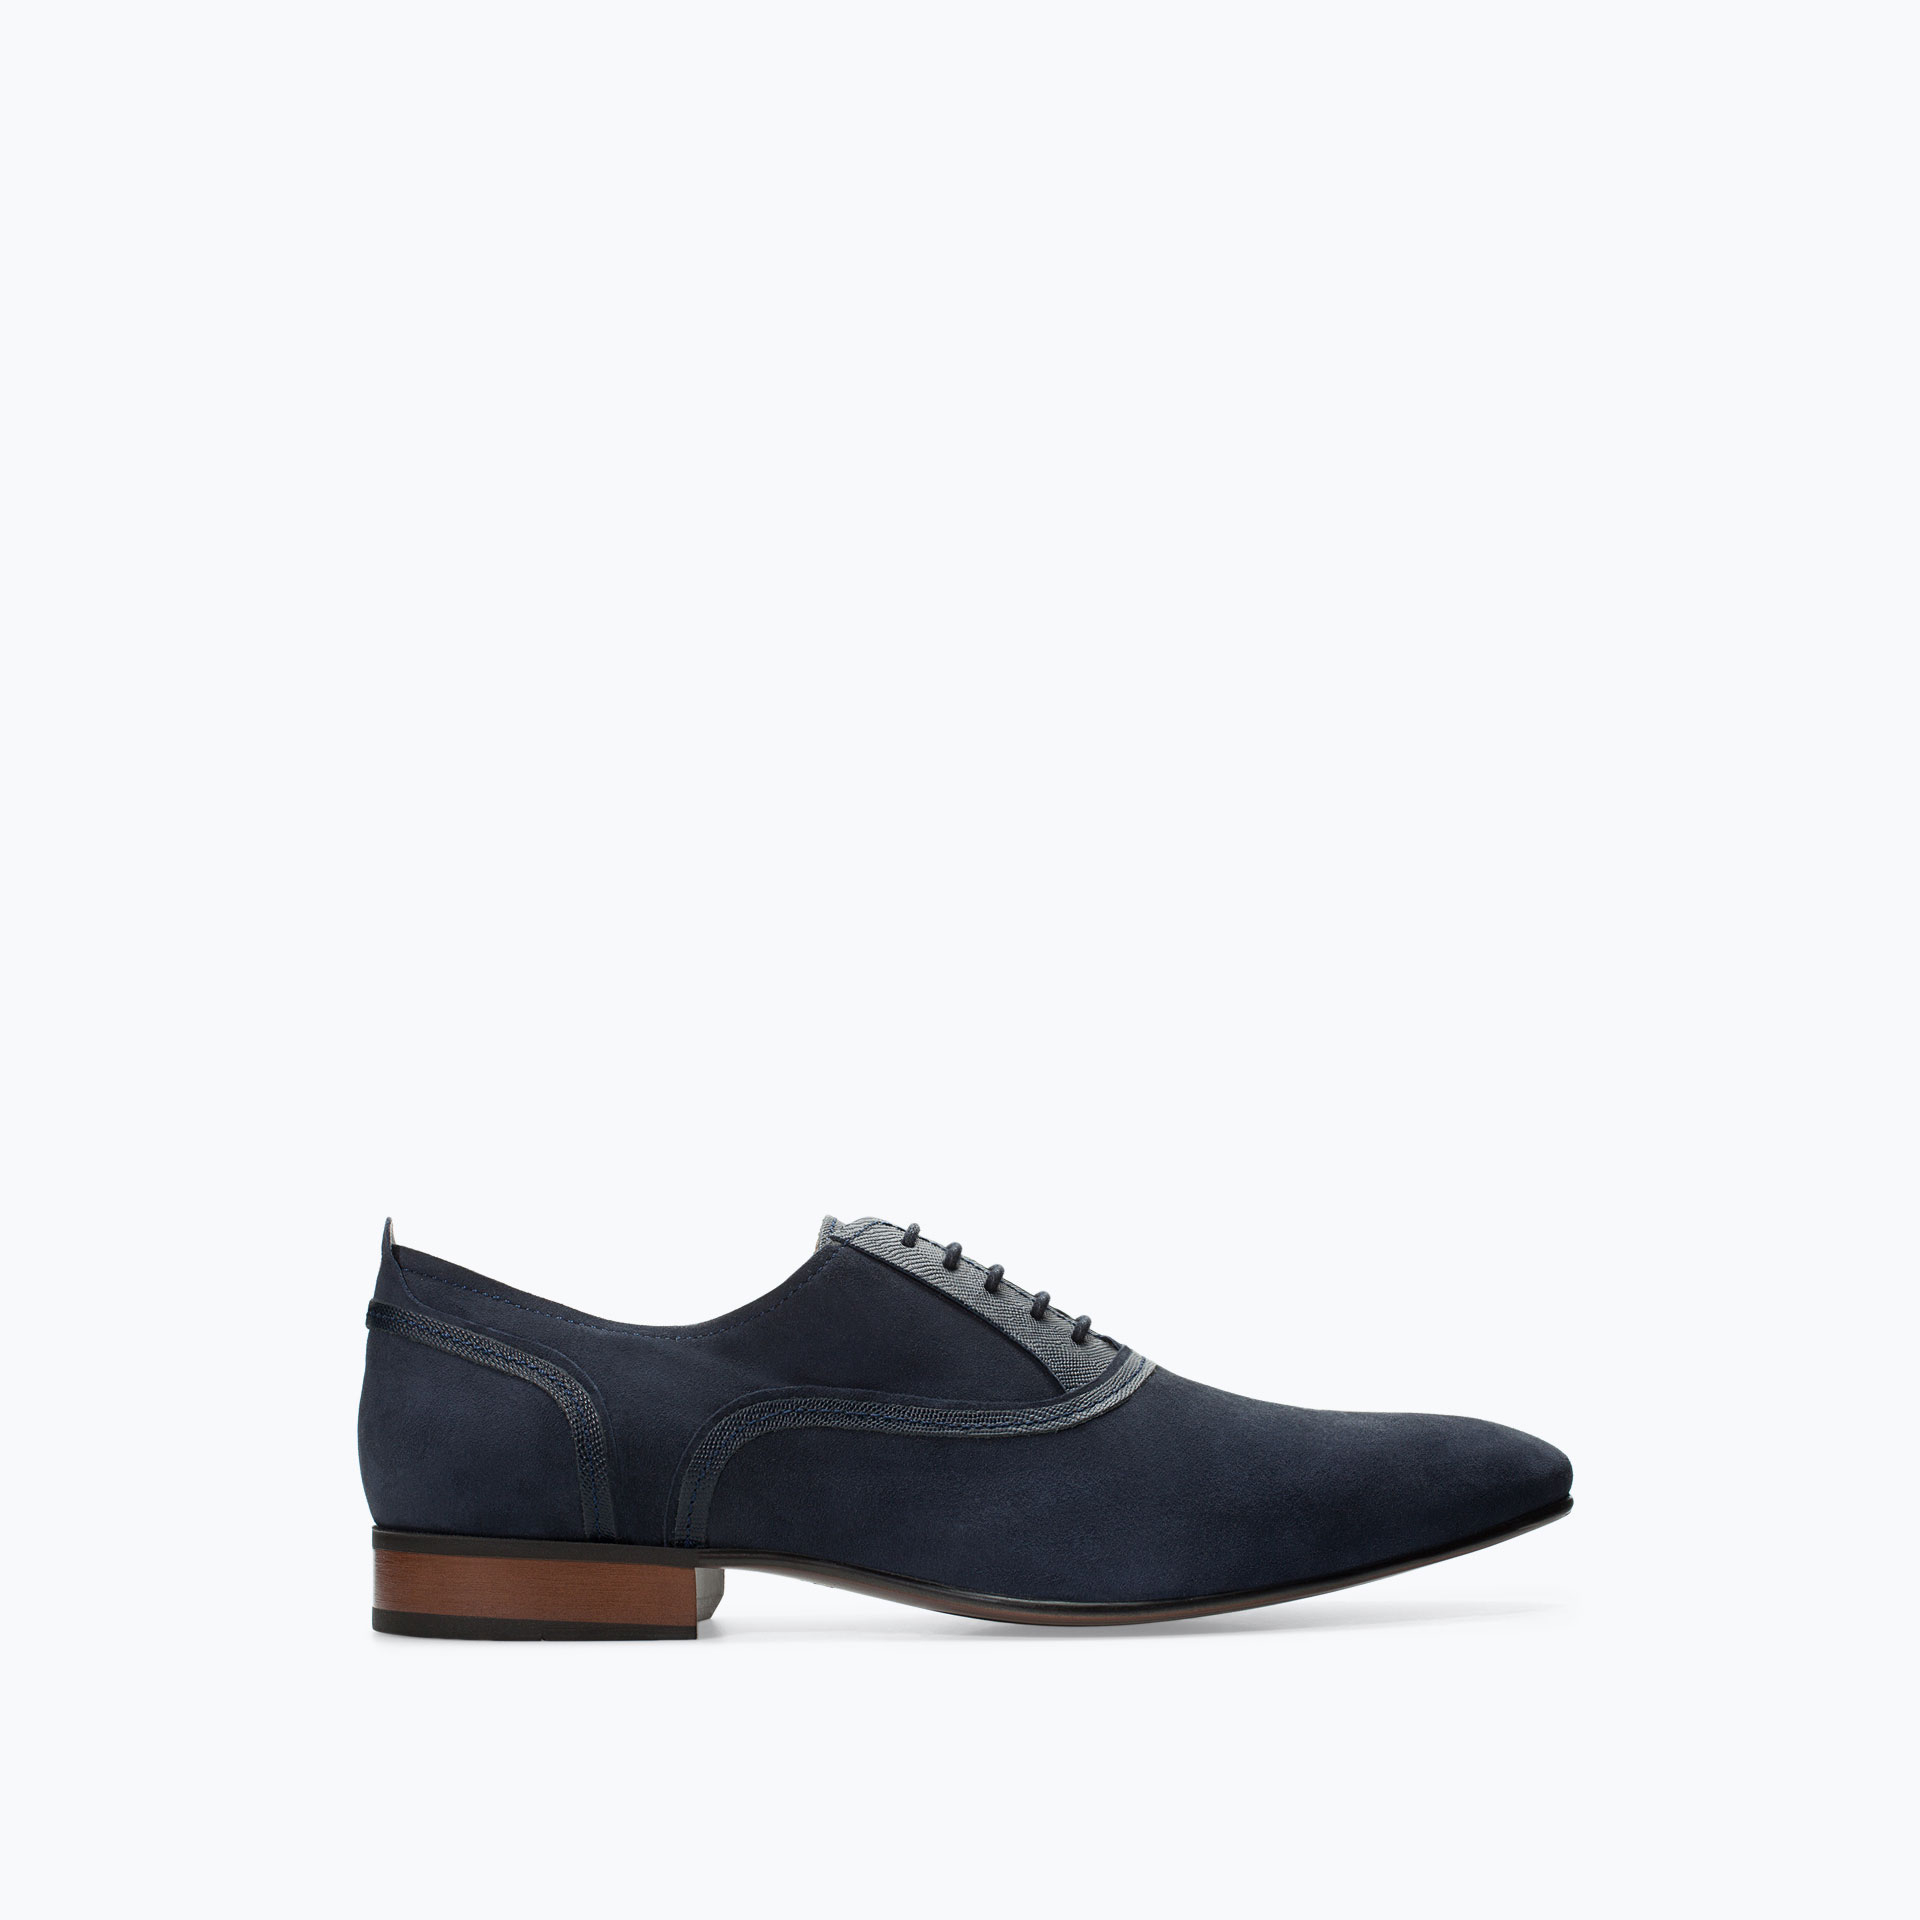 Zara Embossed Leather Oxford Shoe In Blue For Men | Lyst